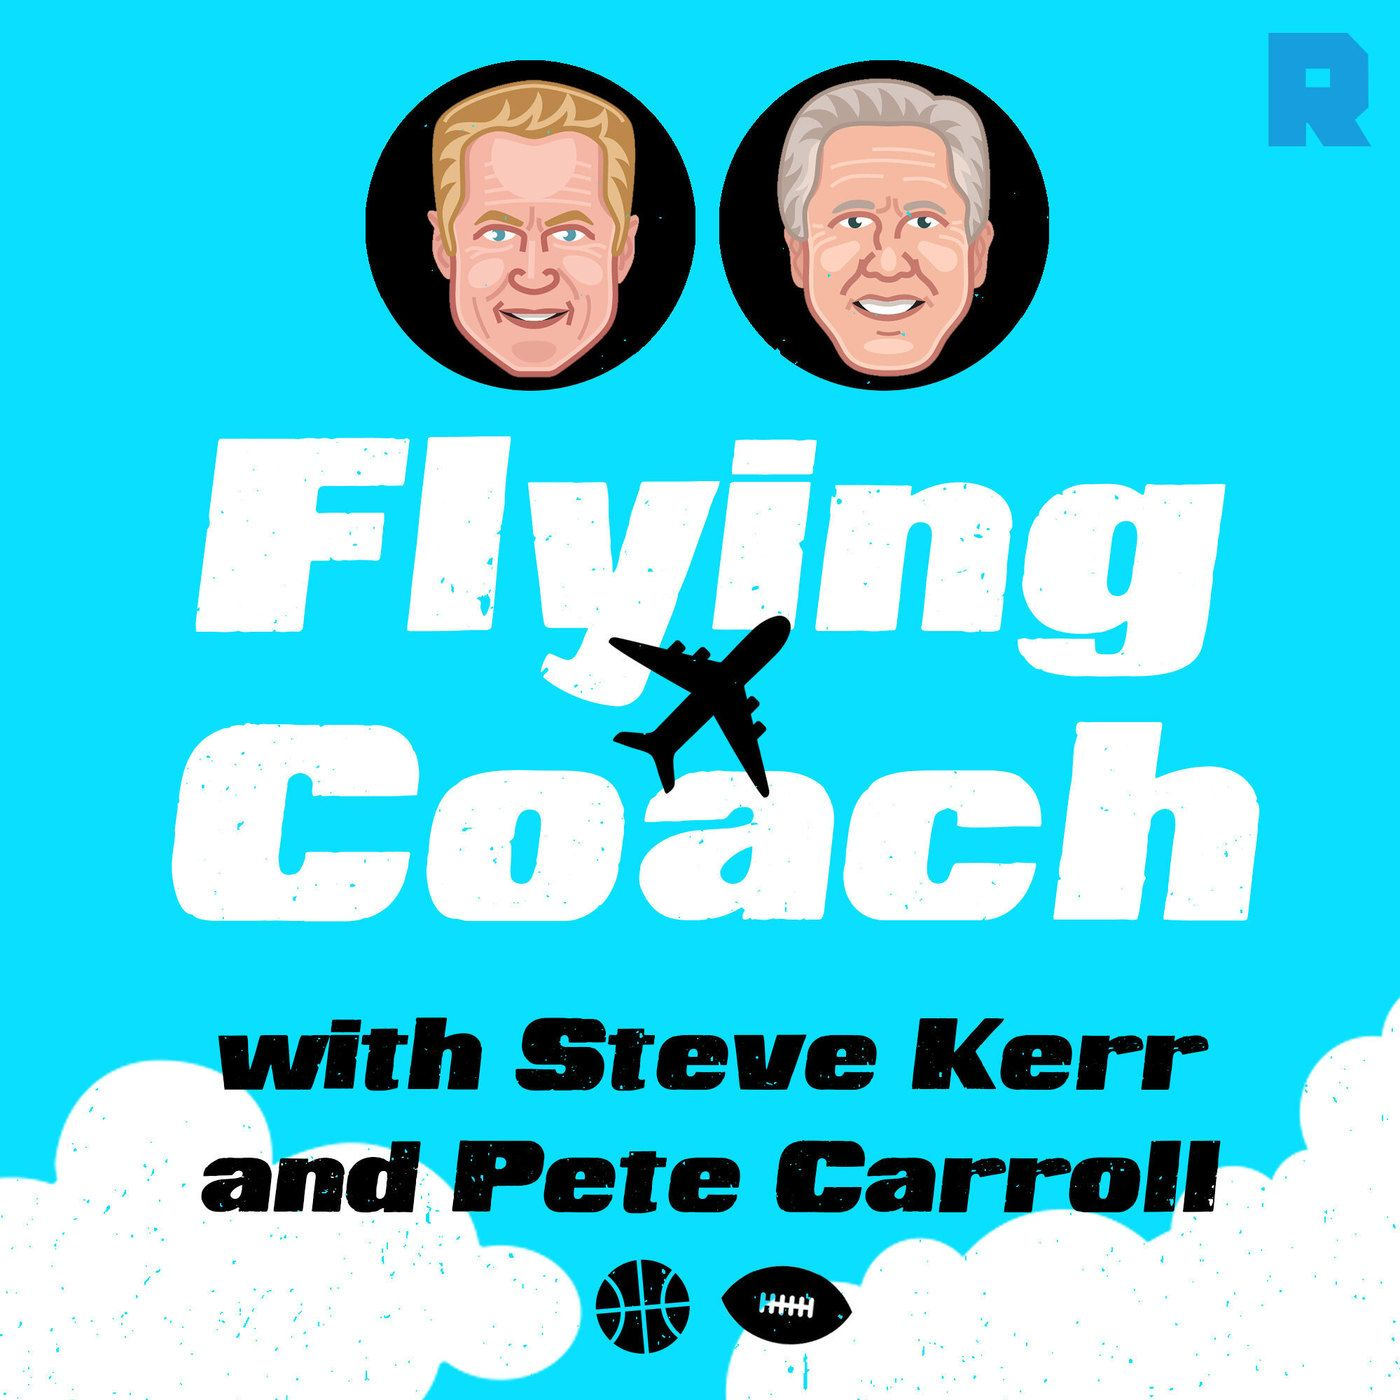 Two Champions on Mentors, Philosophies, and Why They Coach (Premiere Episode!)